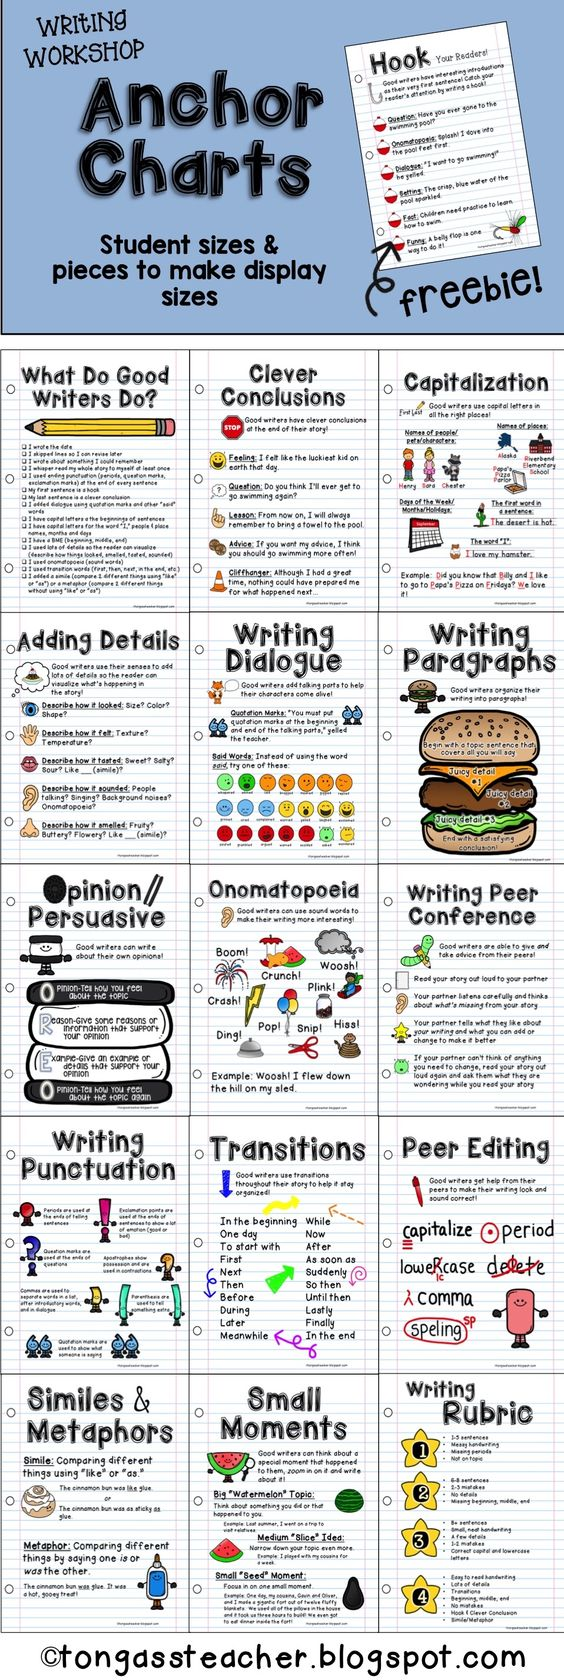 Writing Workshop Anchor Charts: